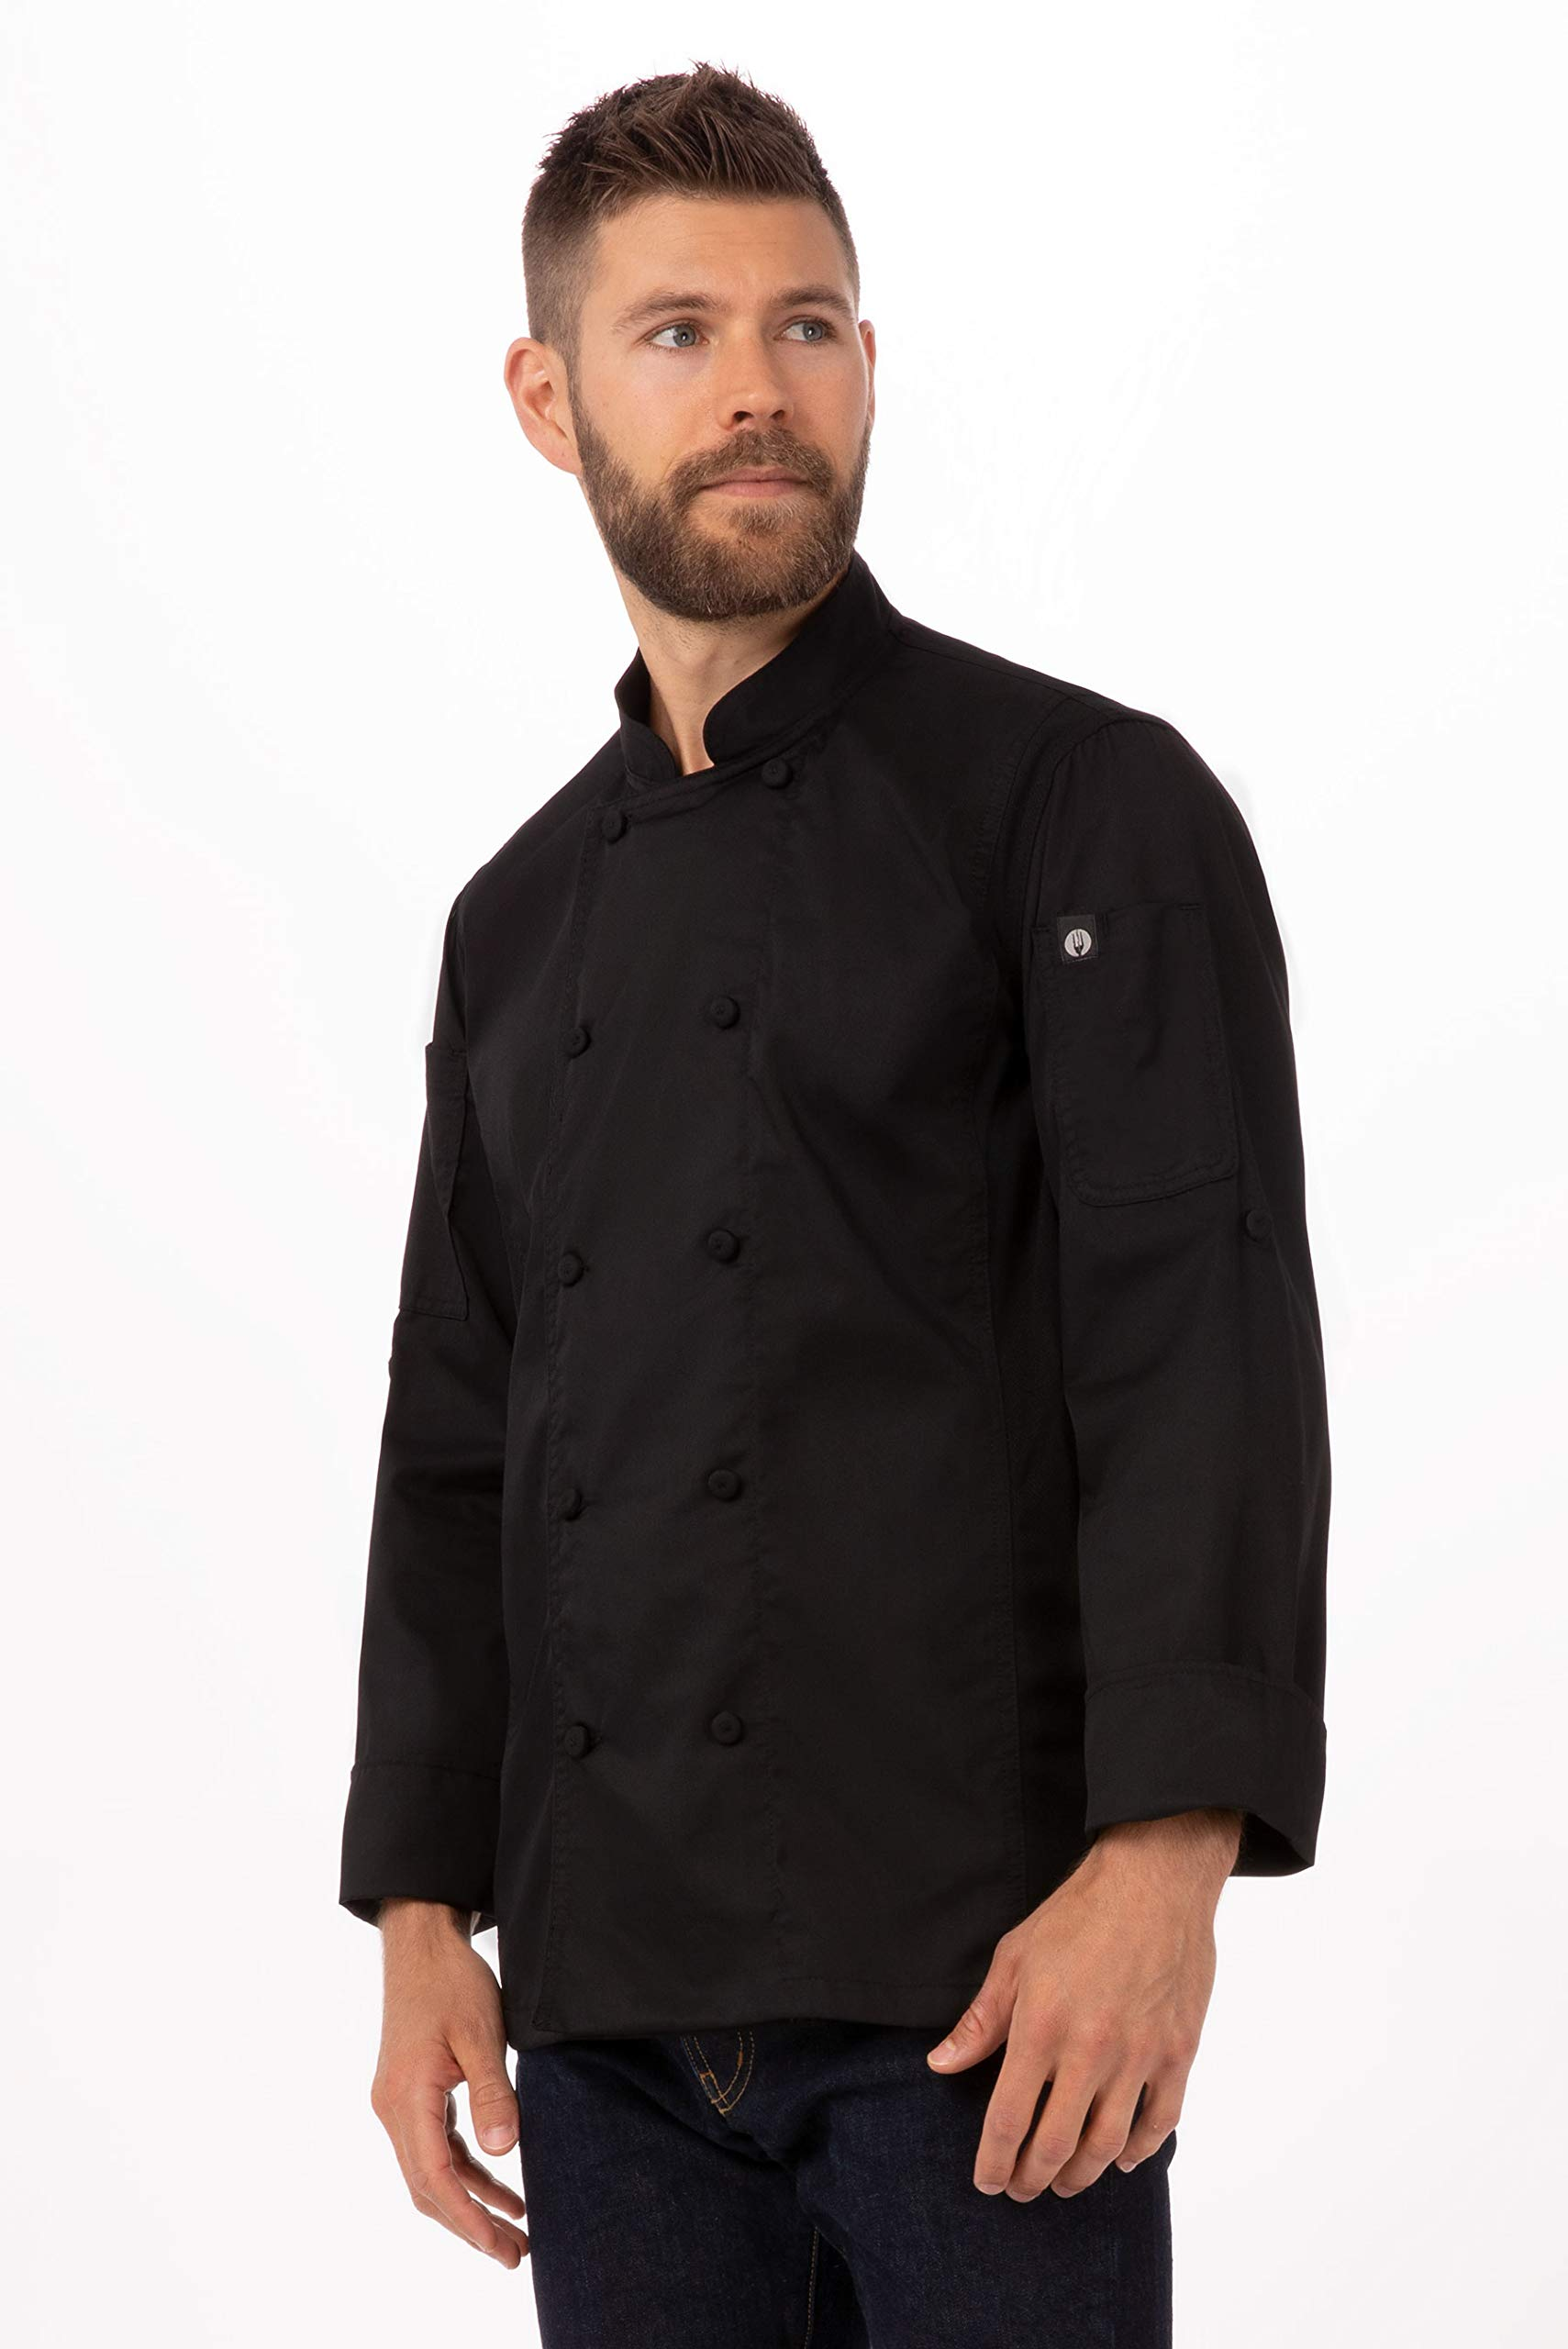 Chef Works Men's Bowden Chef Coat, Black, Large by Chef Works